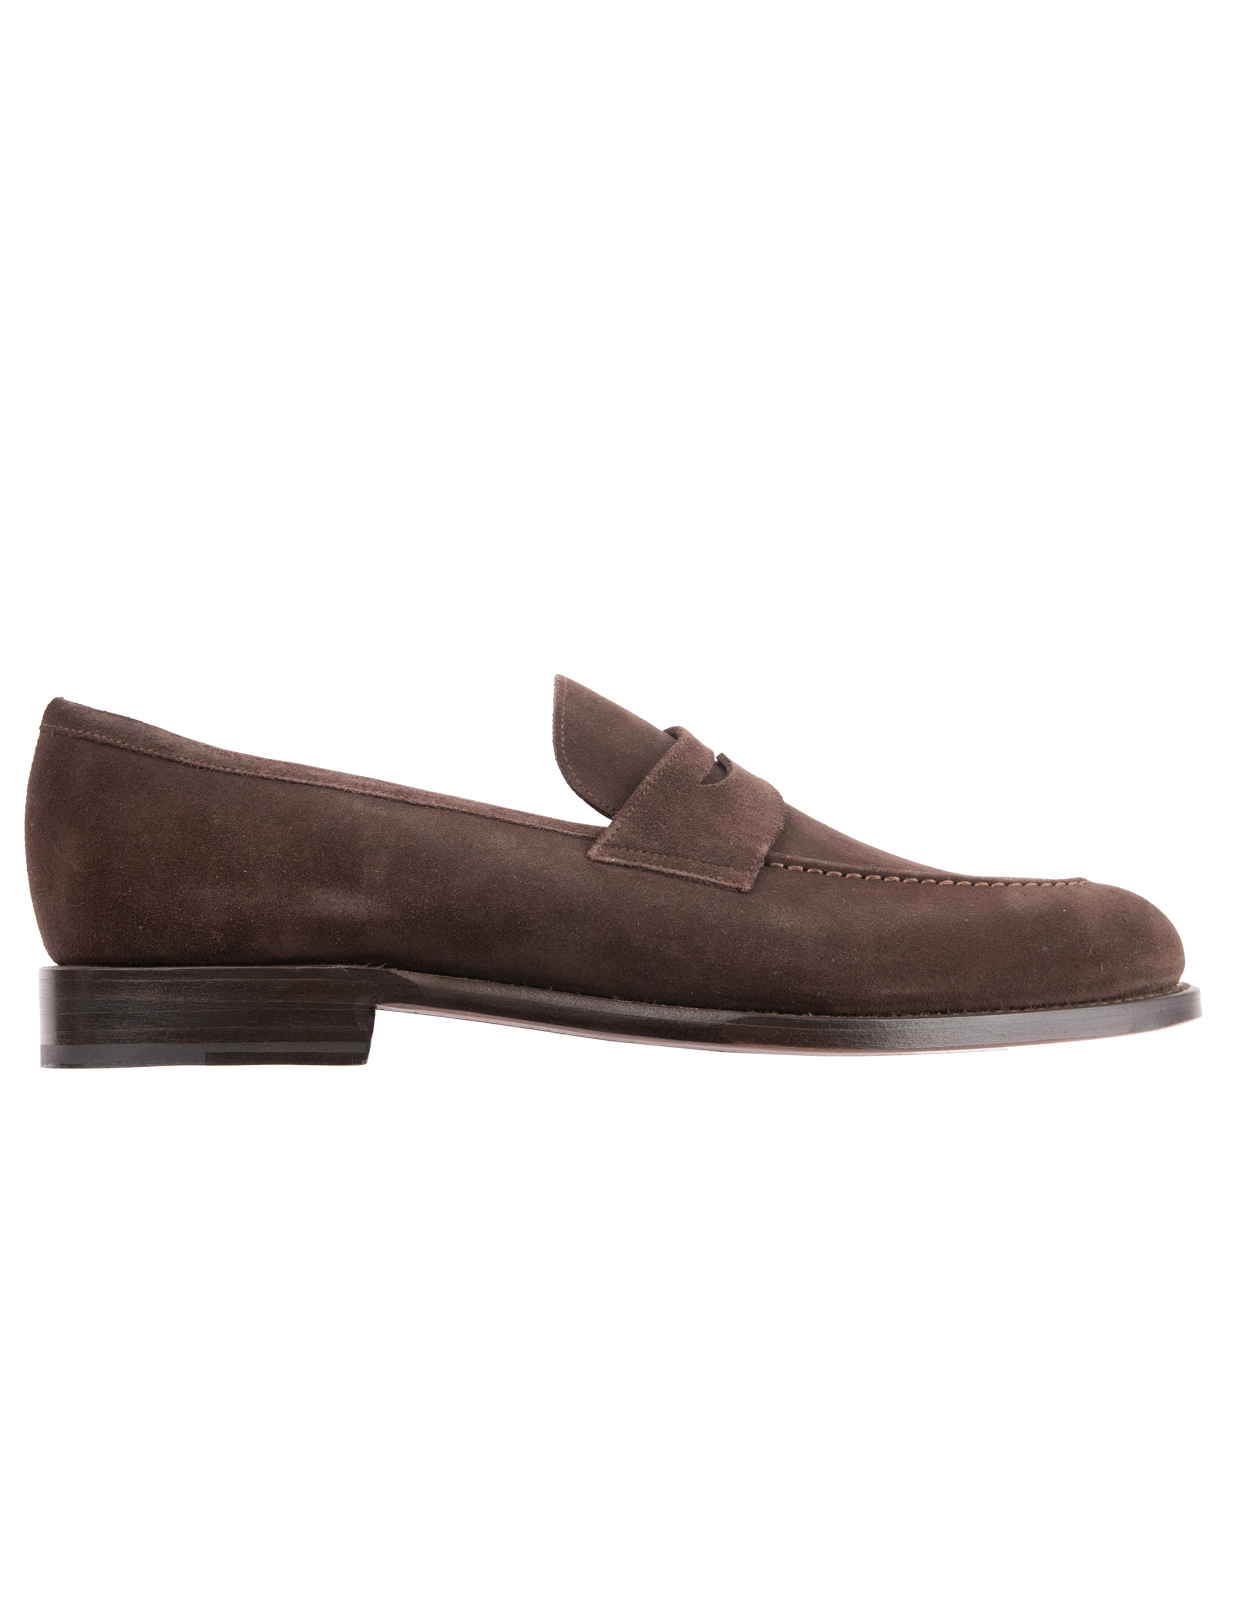 Penny Loafers Suede Bitter Chocolate Stl 11